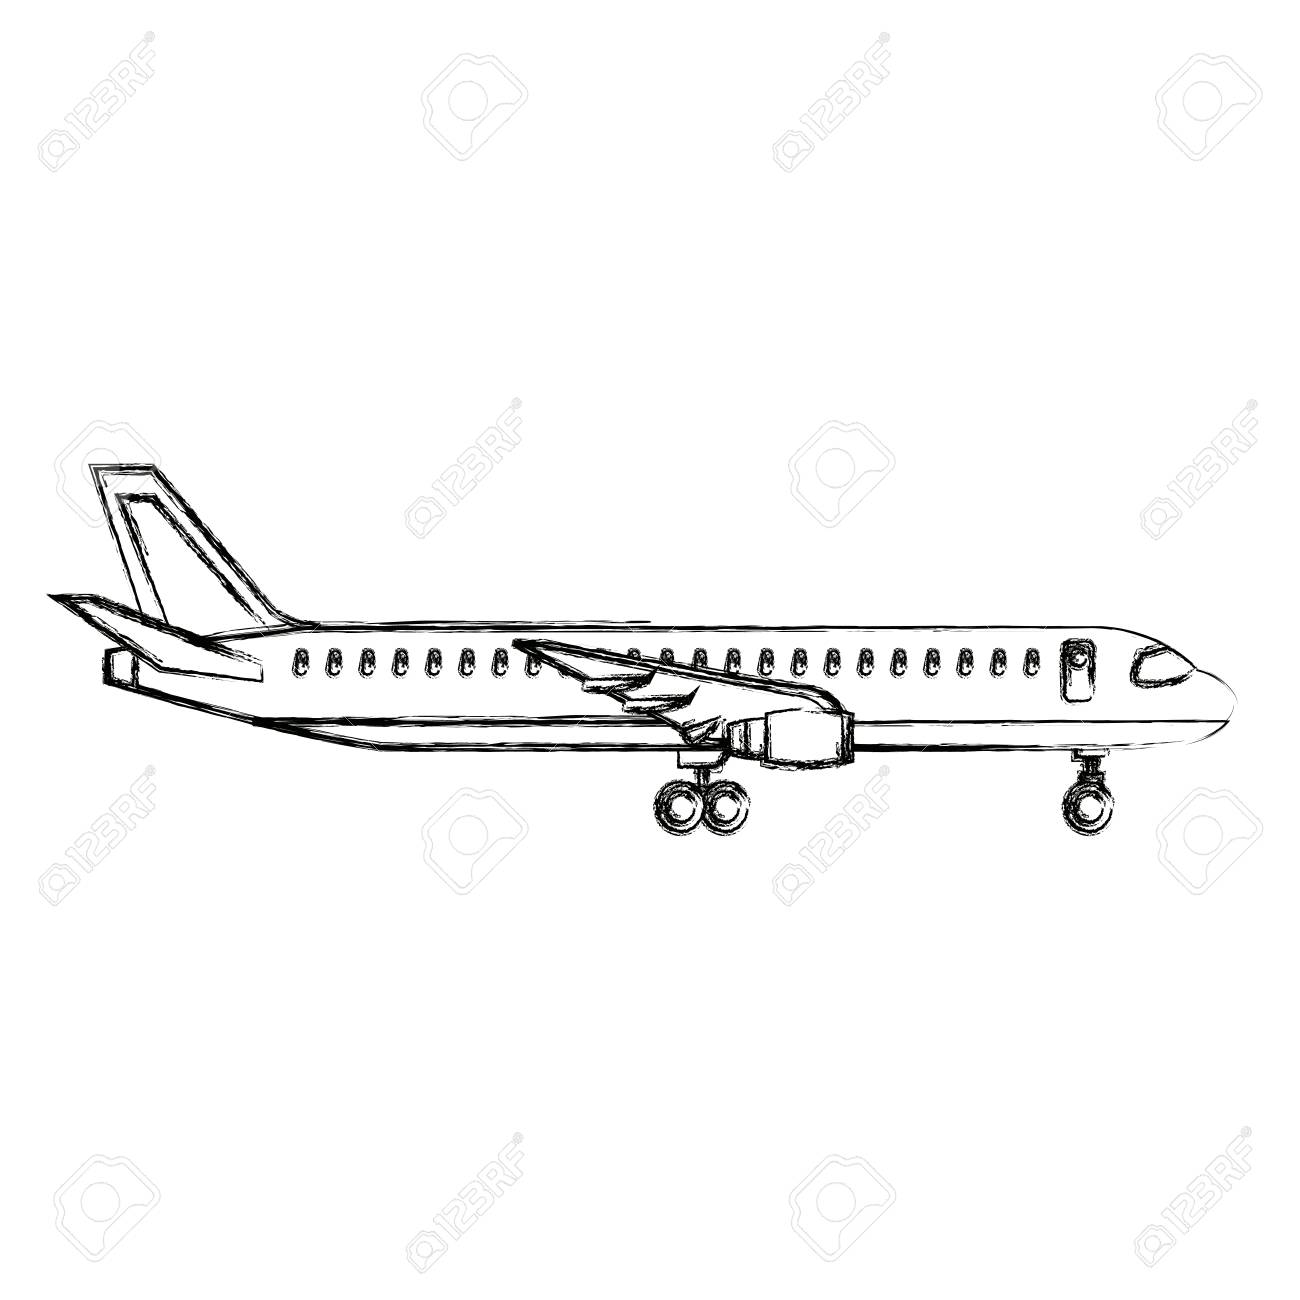 airplane side view travel passenger commercial vector illustration.